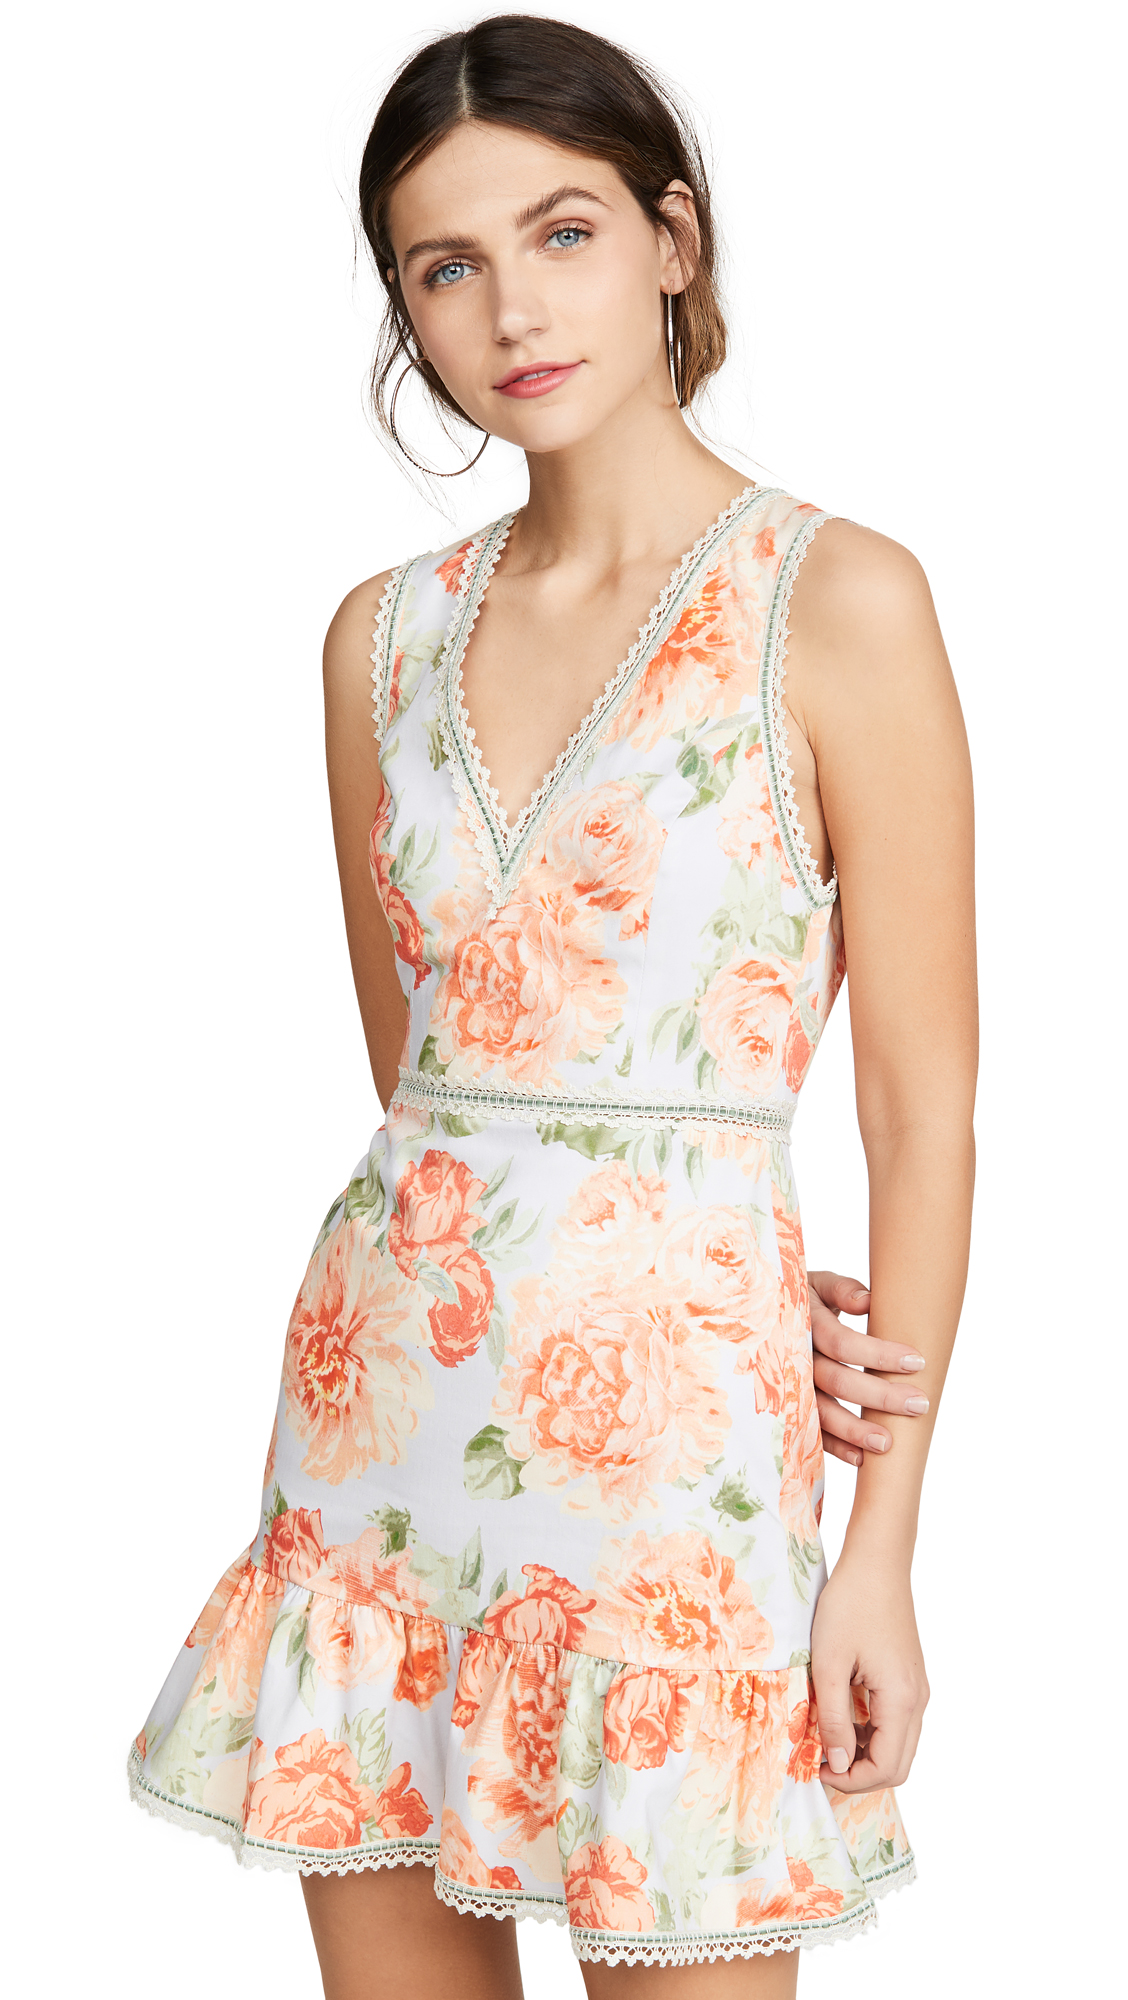 alice + olivia Kirean V Neck Dress - Posy Garden Dusty Orchid/Multi